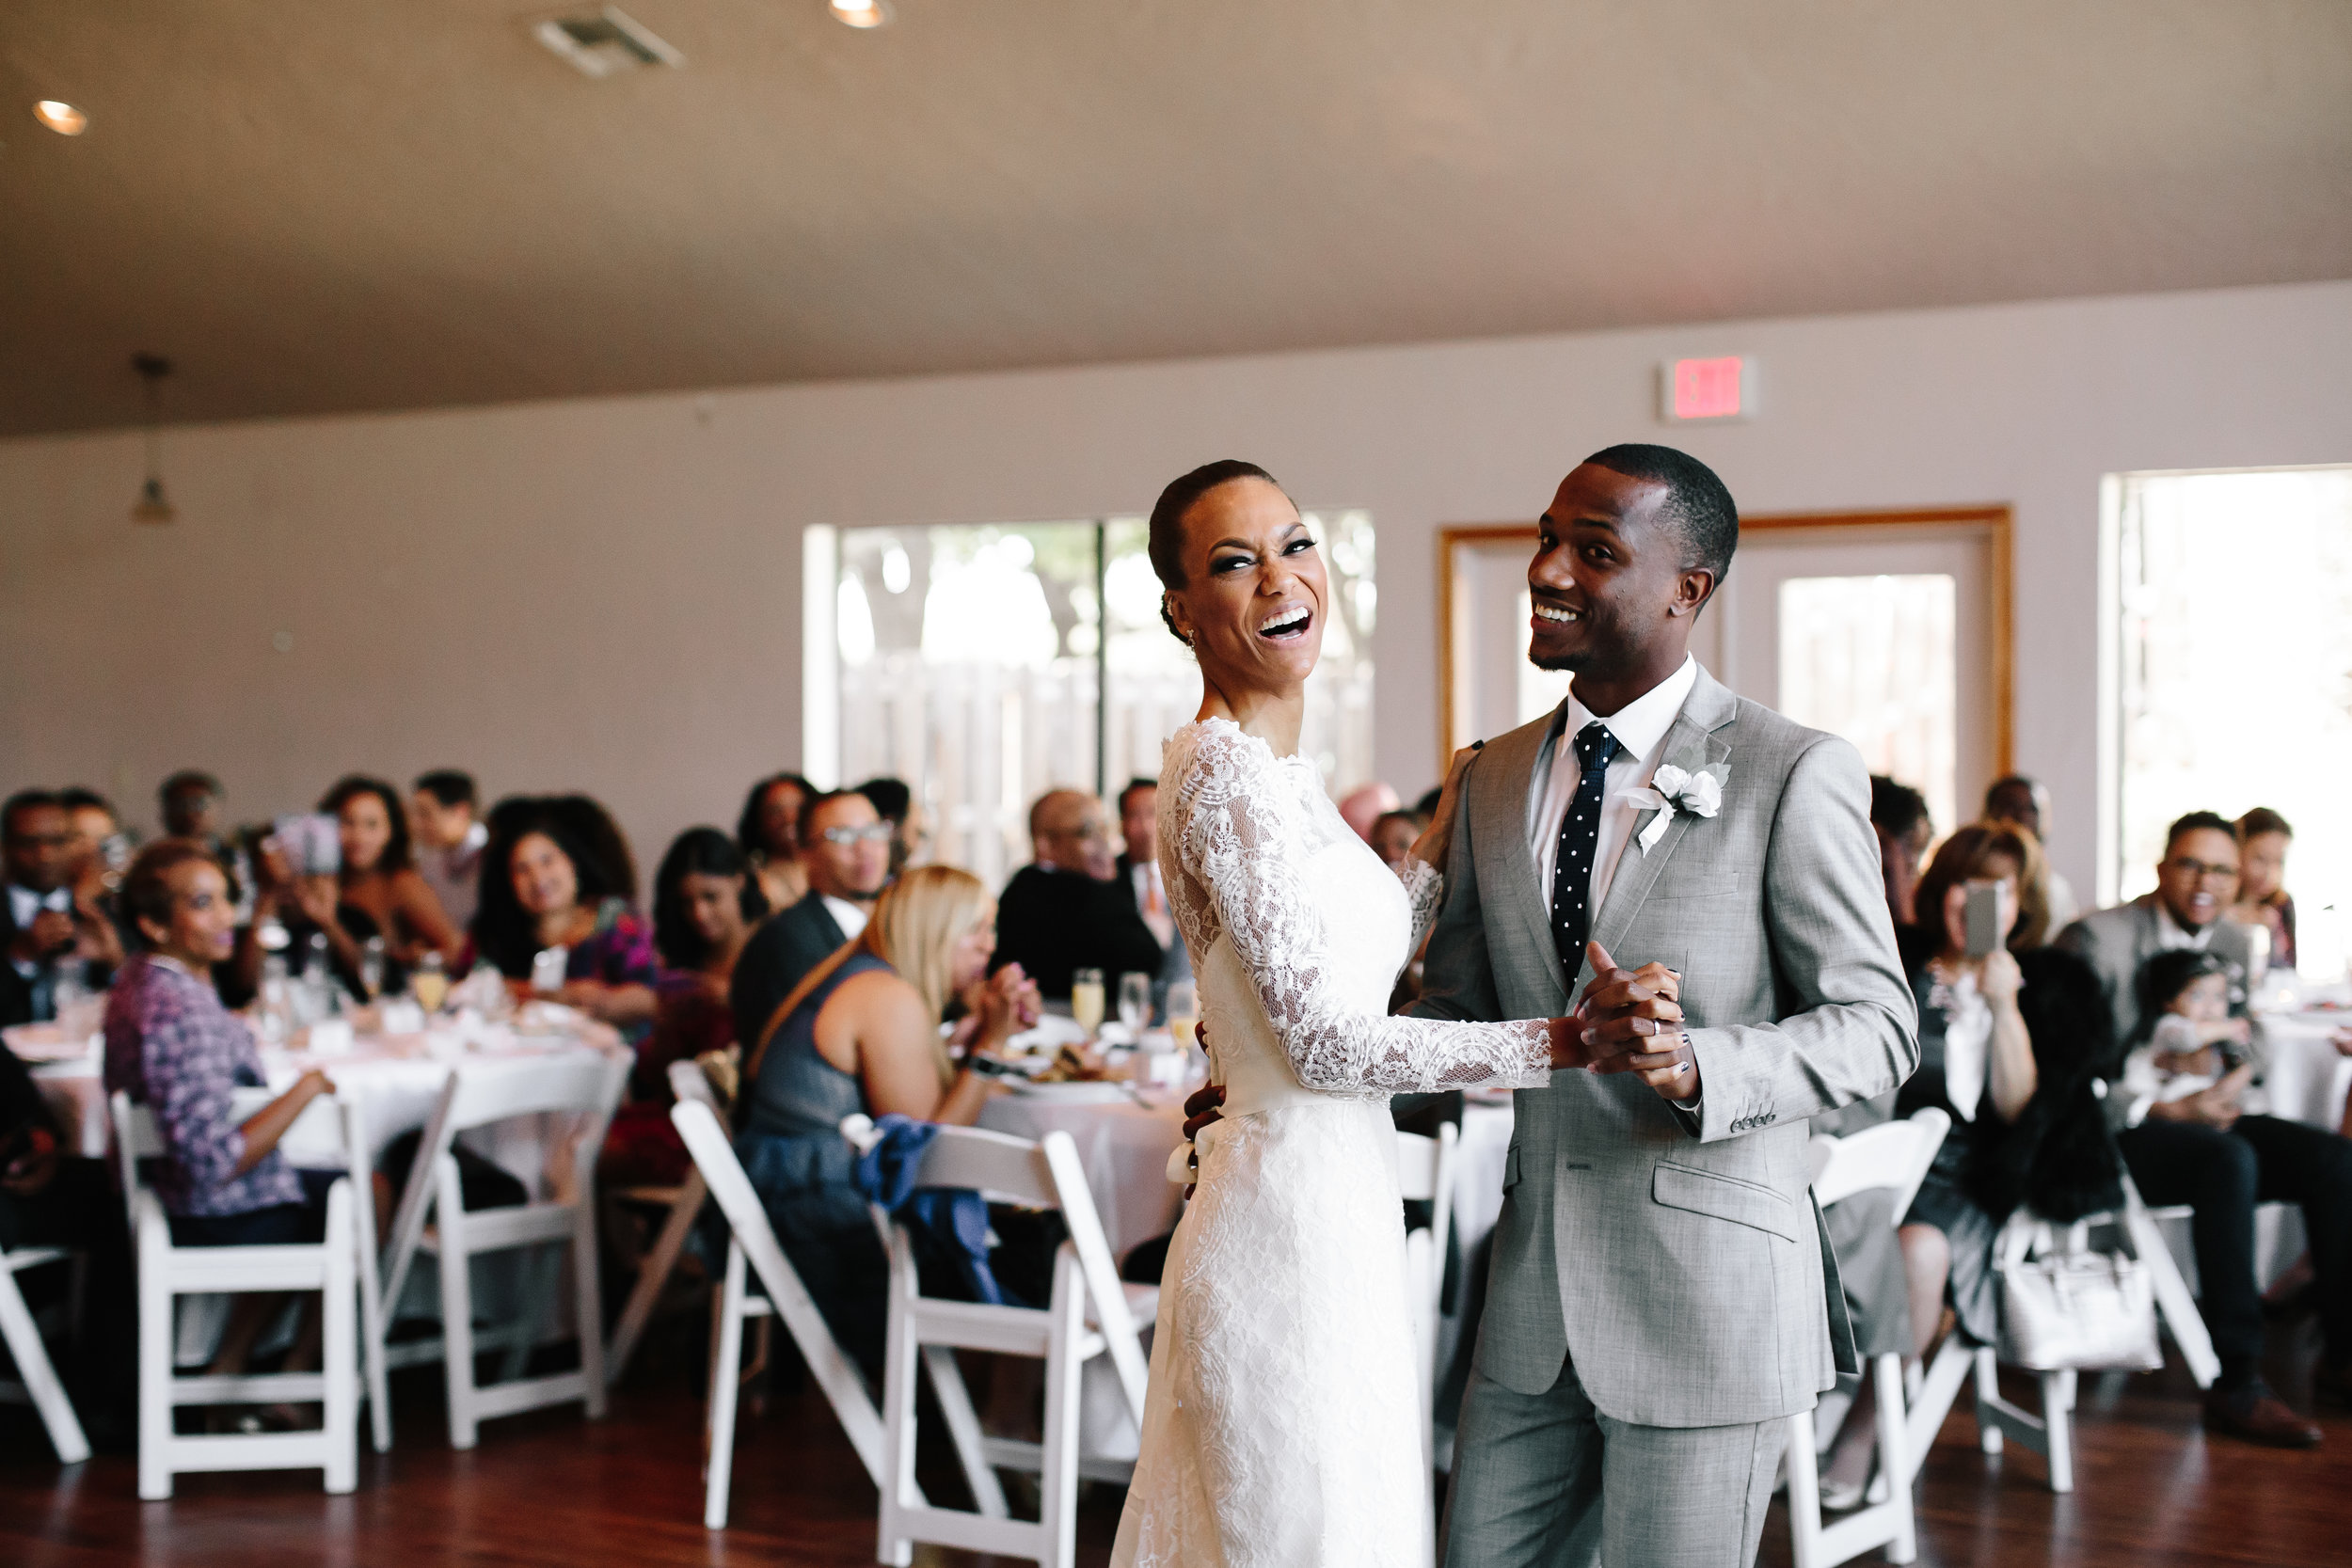 Mr + Mrs Grays-662.jpg